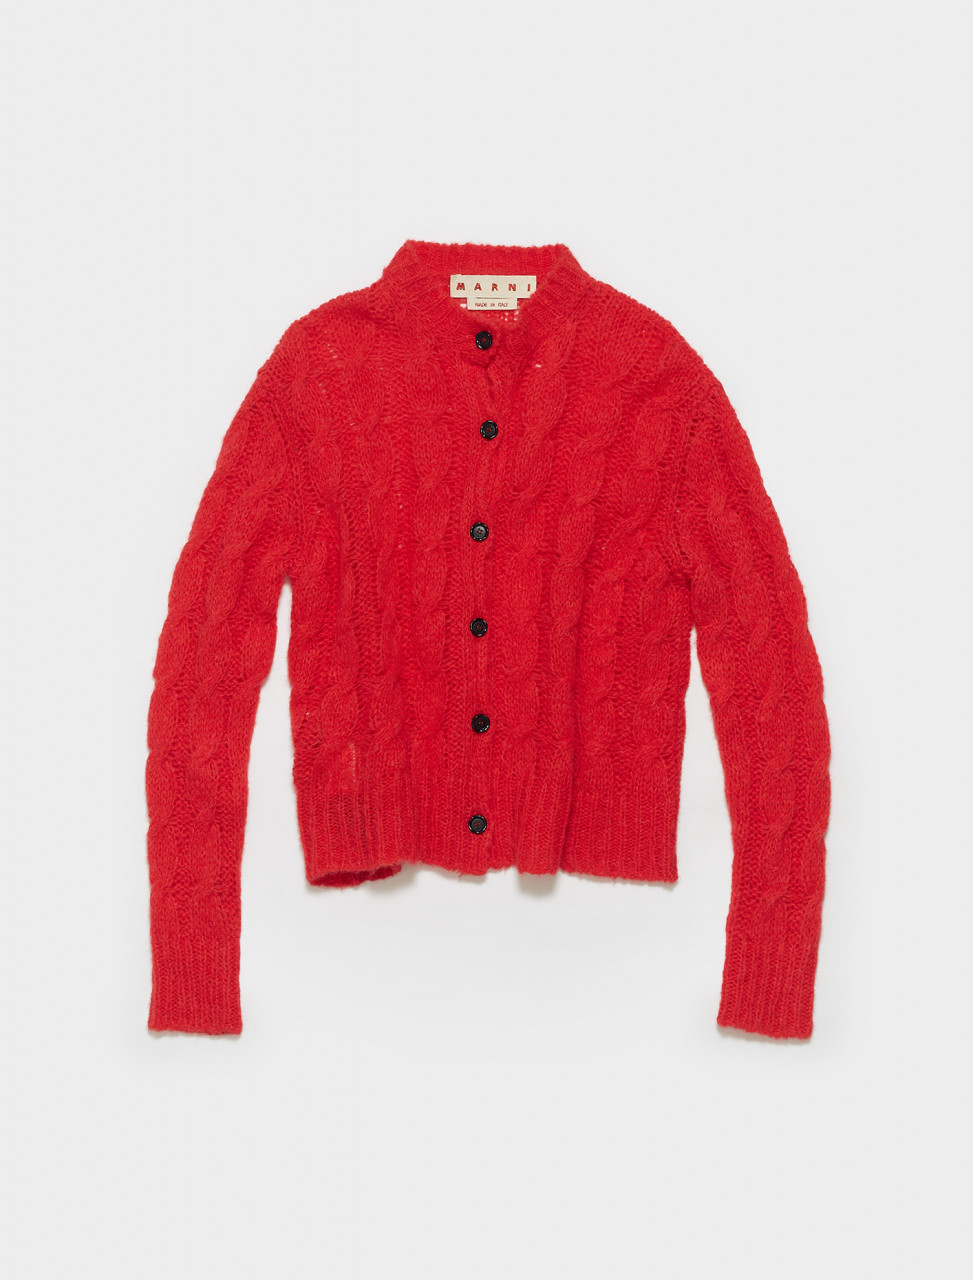 CDMD0174A0-FP113-00R66 MARNI LONG SLEEVE CARDIGAN IN RED